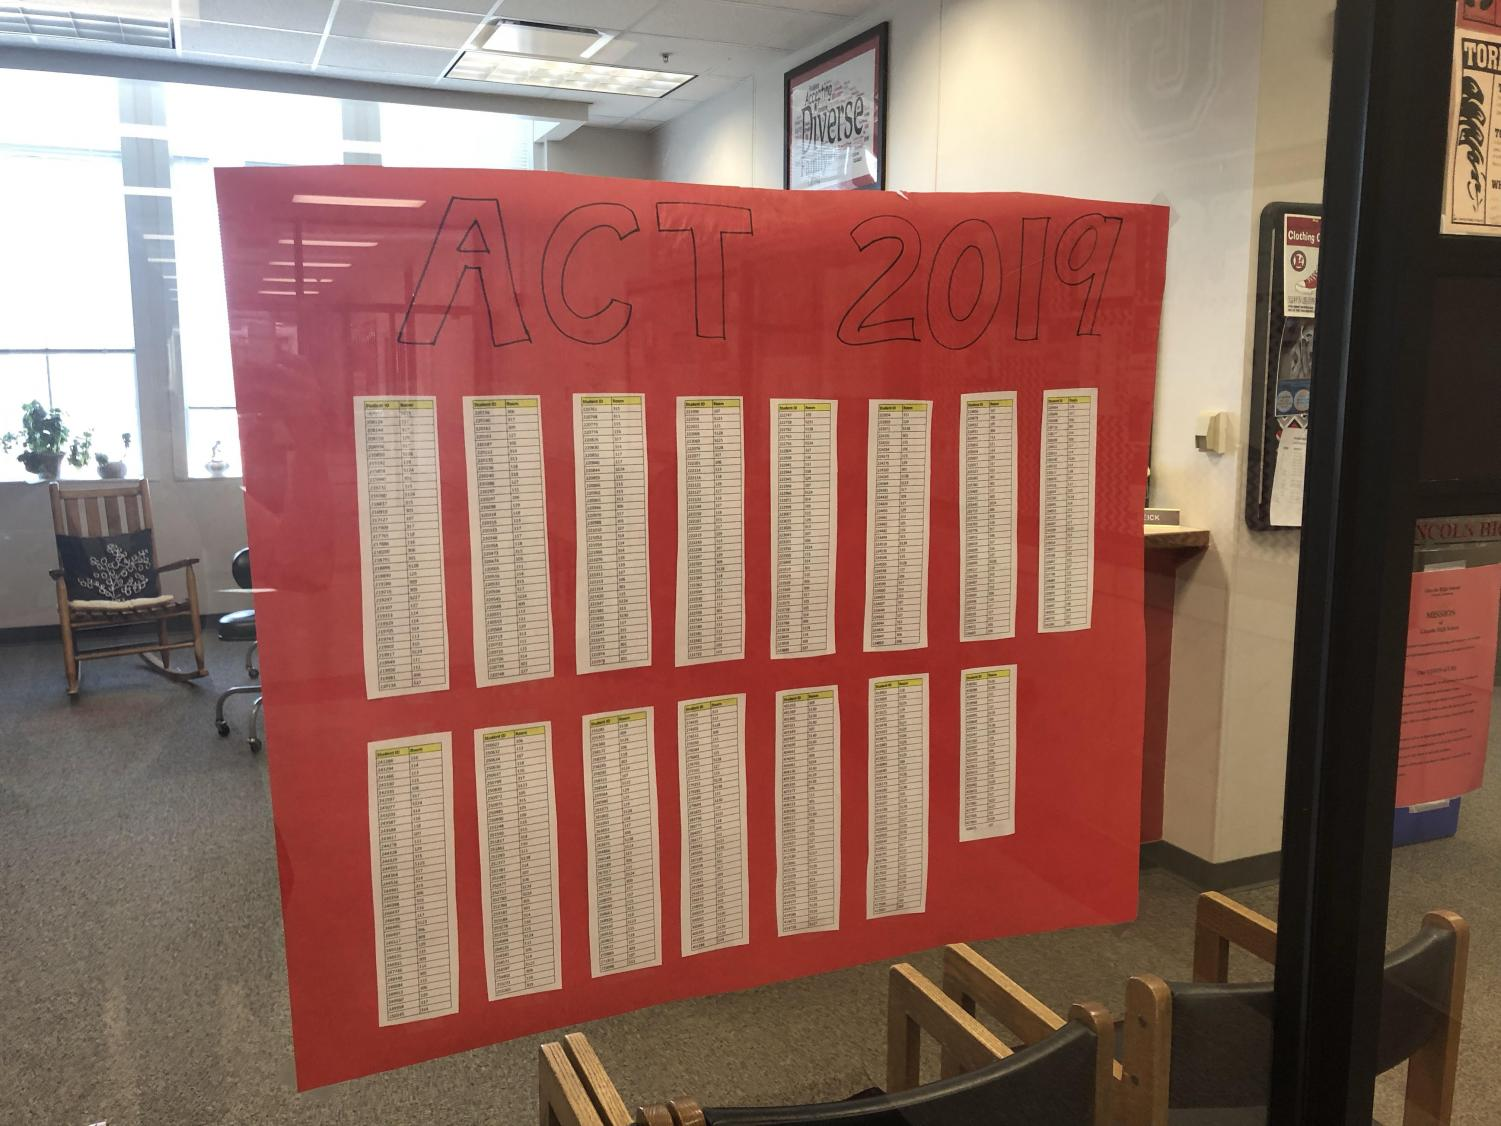 A list of student IDs and what room they are in for the ACT Test on Tuesday April 2, 2019 is up outside of the counselor's office. Photo by Emily Price